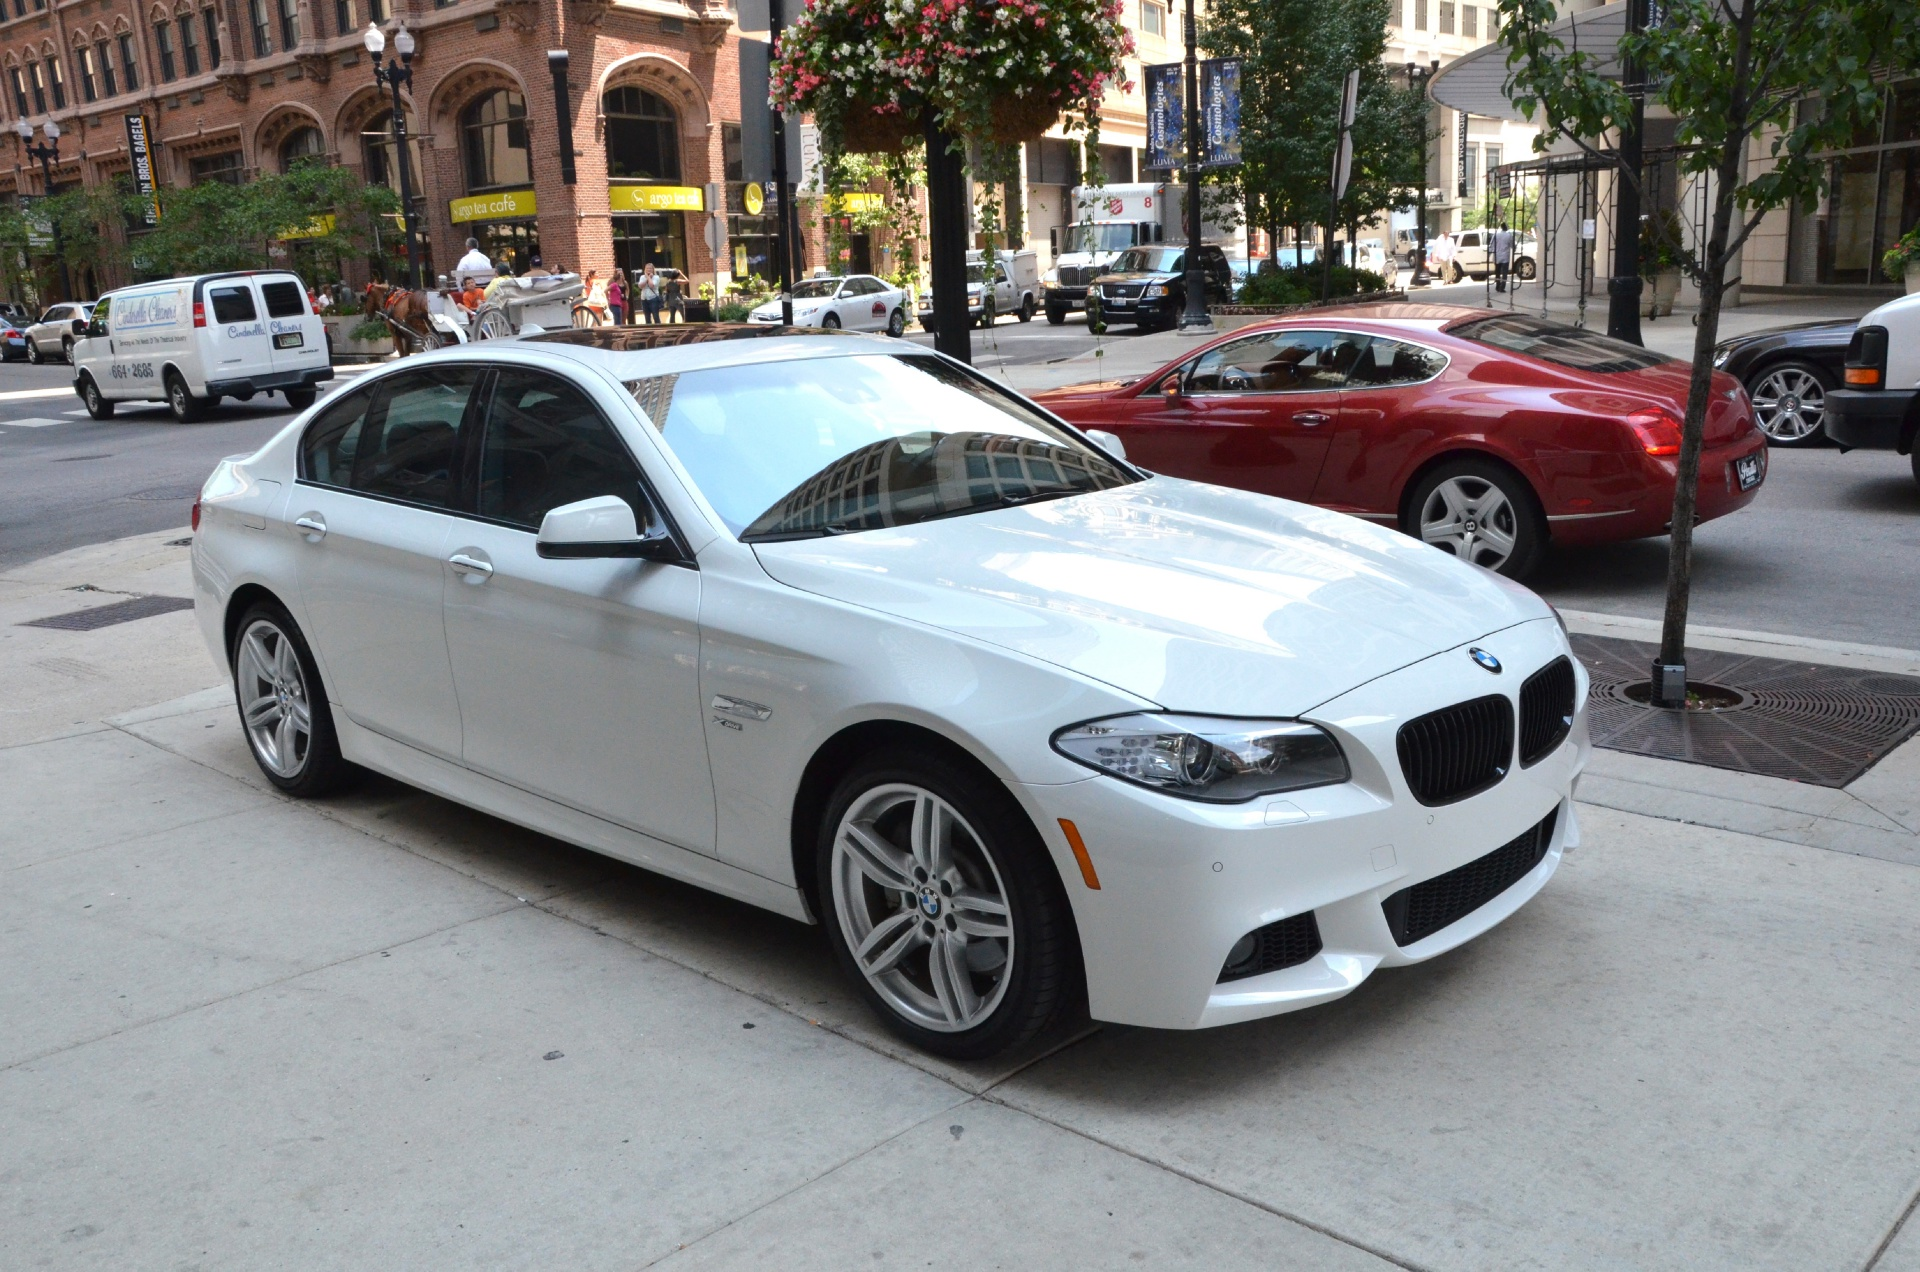 Bmw 535i Xdrive >> 2012 BMW 5 Series 535i xDrive Stock # GC1133A for sale near Chicago, IL | IL BMW Dealer